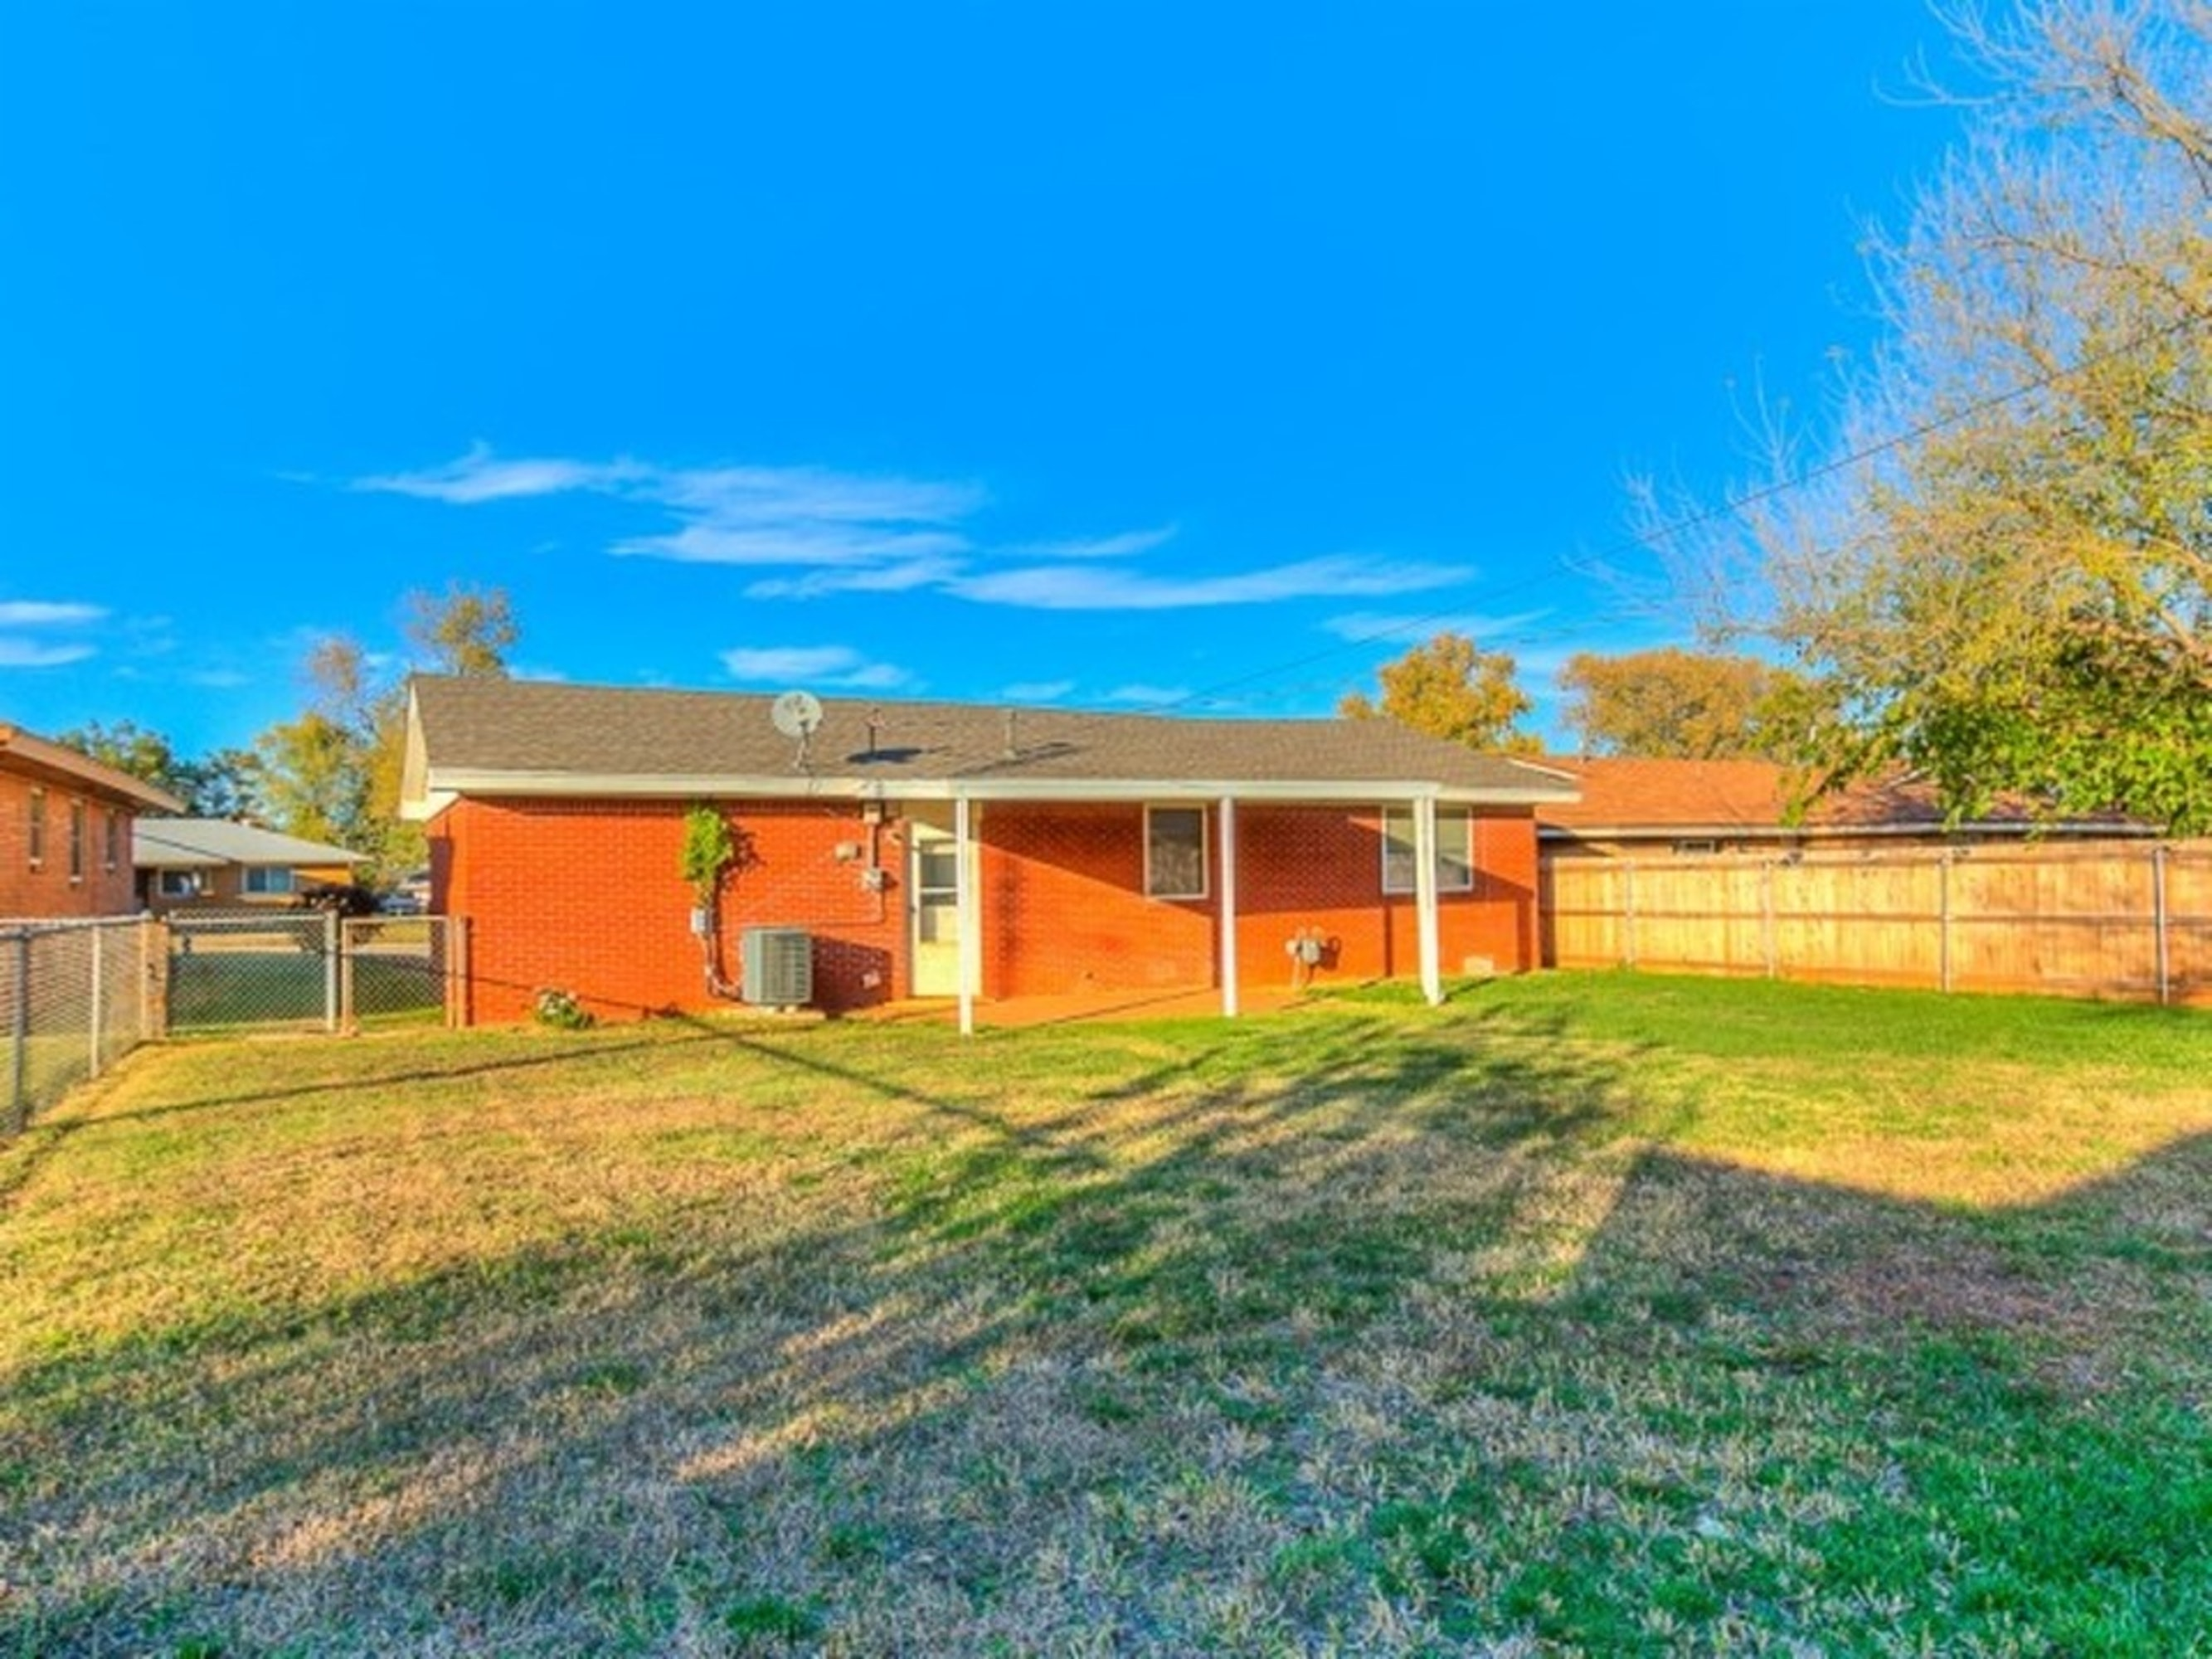 Newly Remodeled 3 Bedroom 1 5 Bath Ranch Style Home In Yukon Ok With Easy Access To I 40